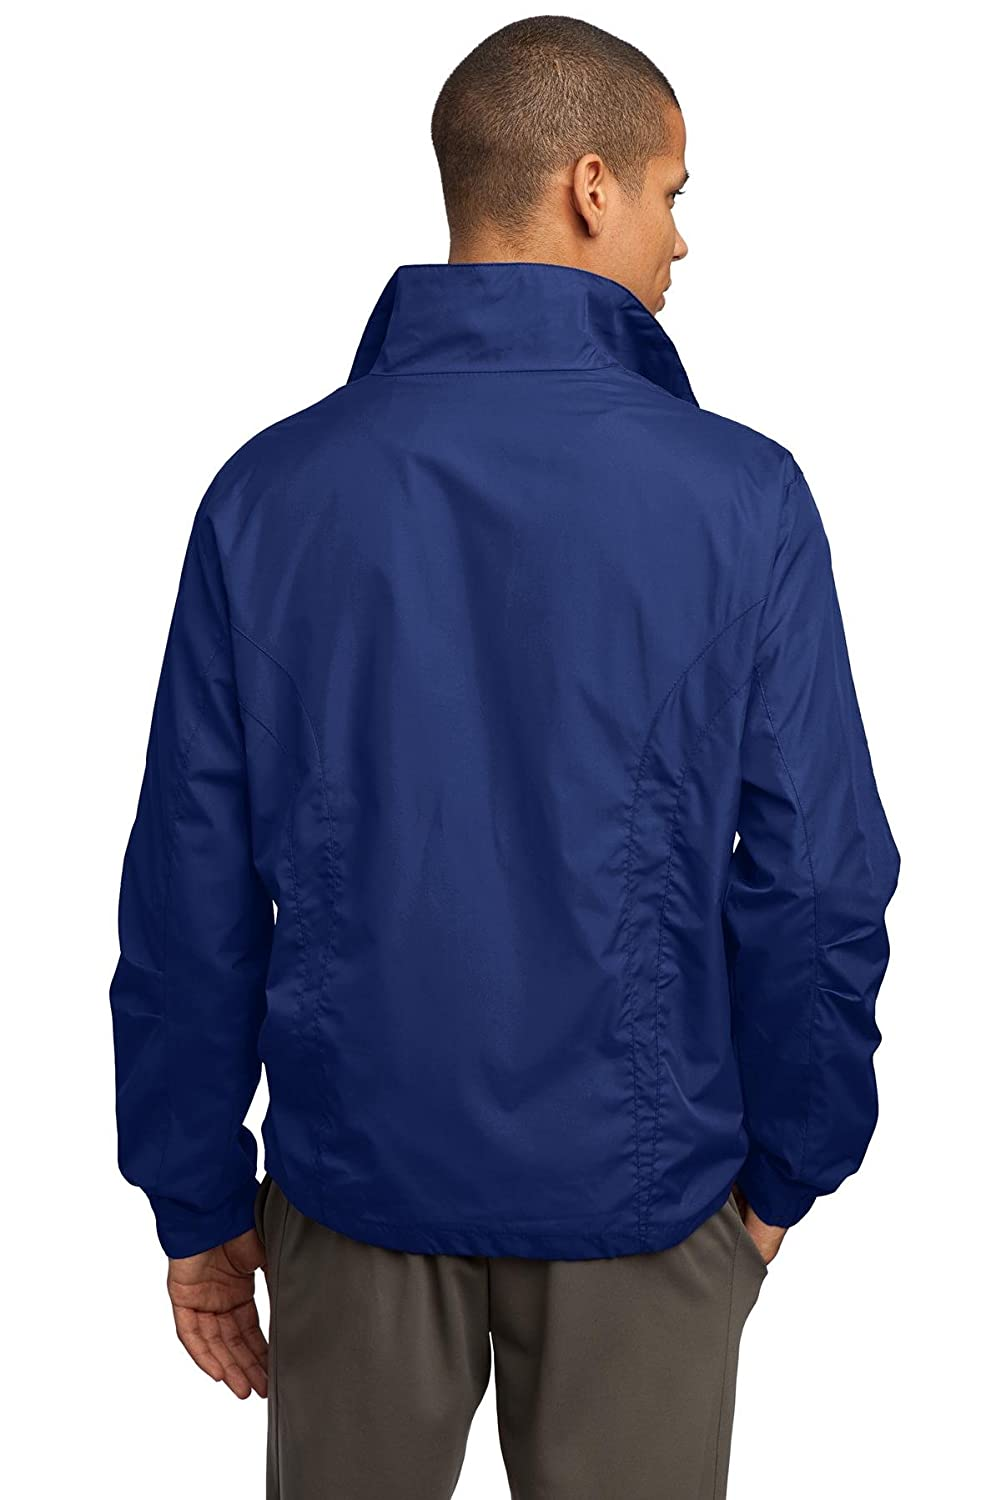 Sport-Tek Mens Full Zip Wind Jacket Full Zip Wind Jacket JST70-Men/'s